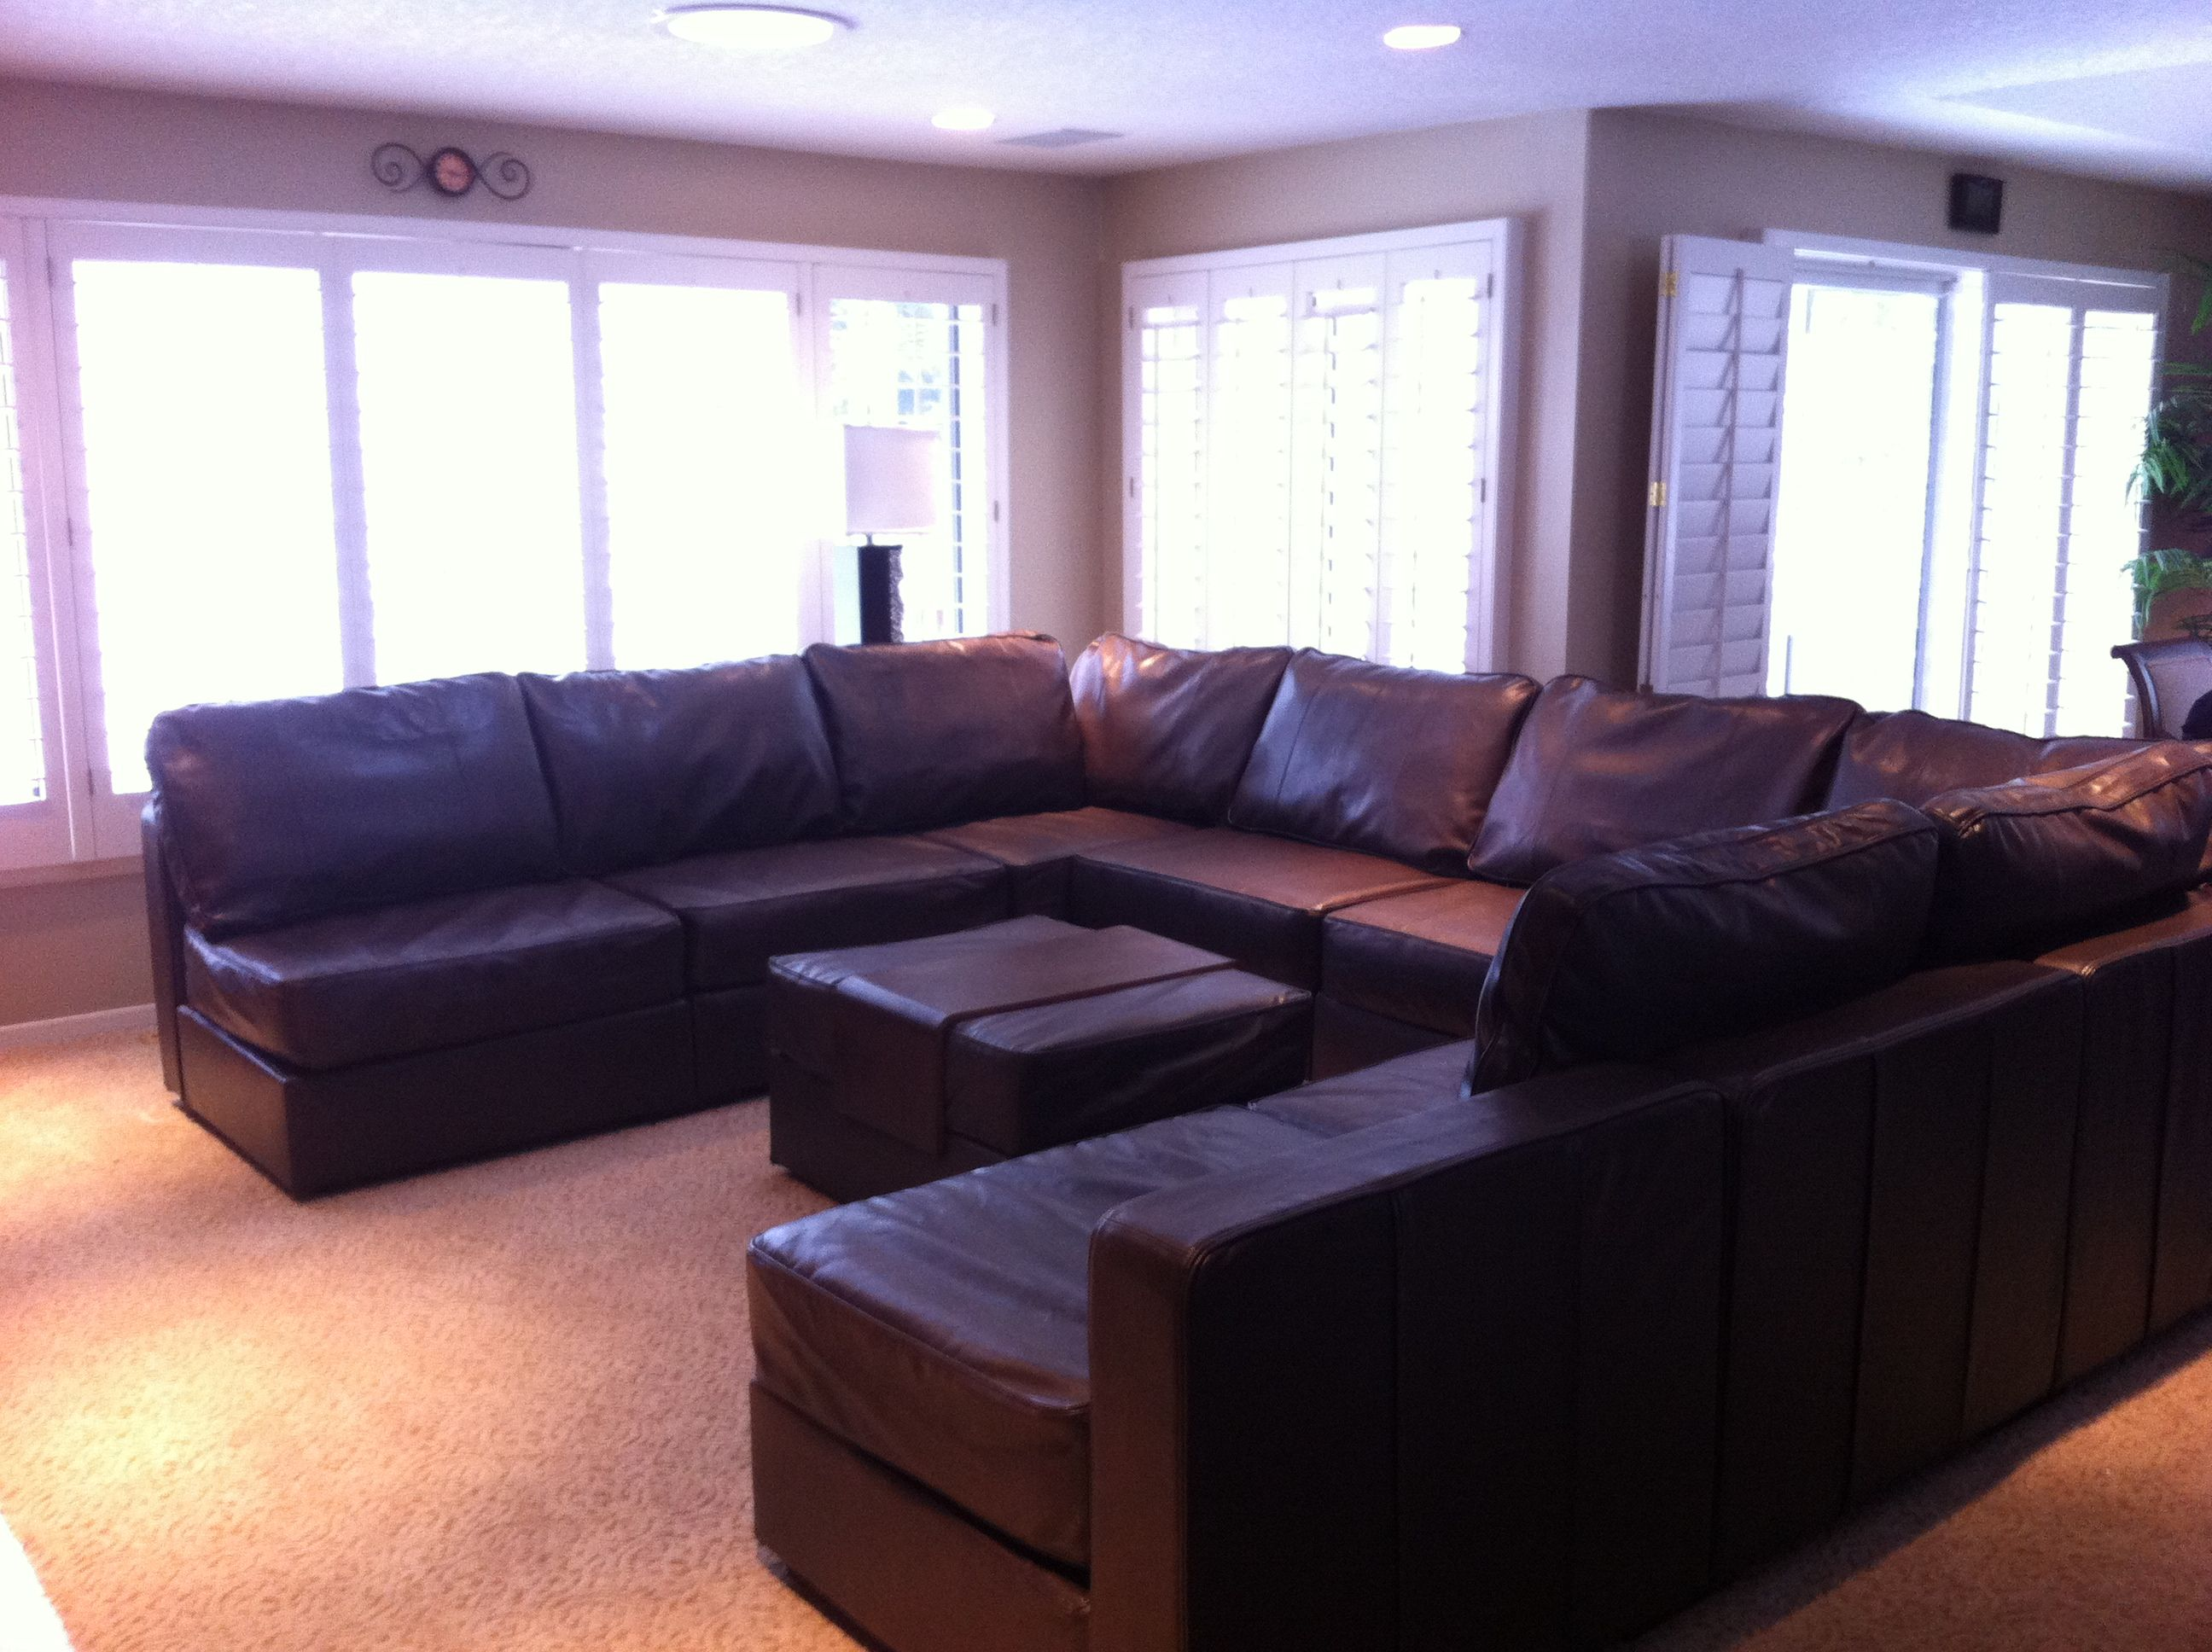 6s Glove Leather U shaped couch set up with a matching ottoman in